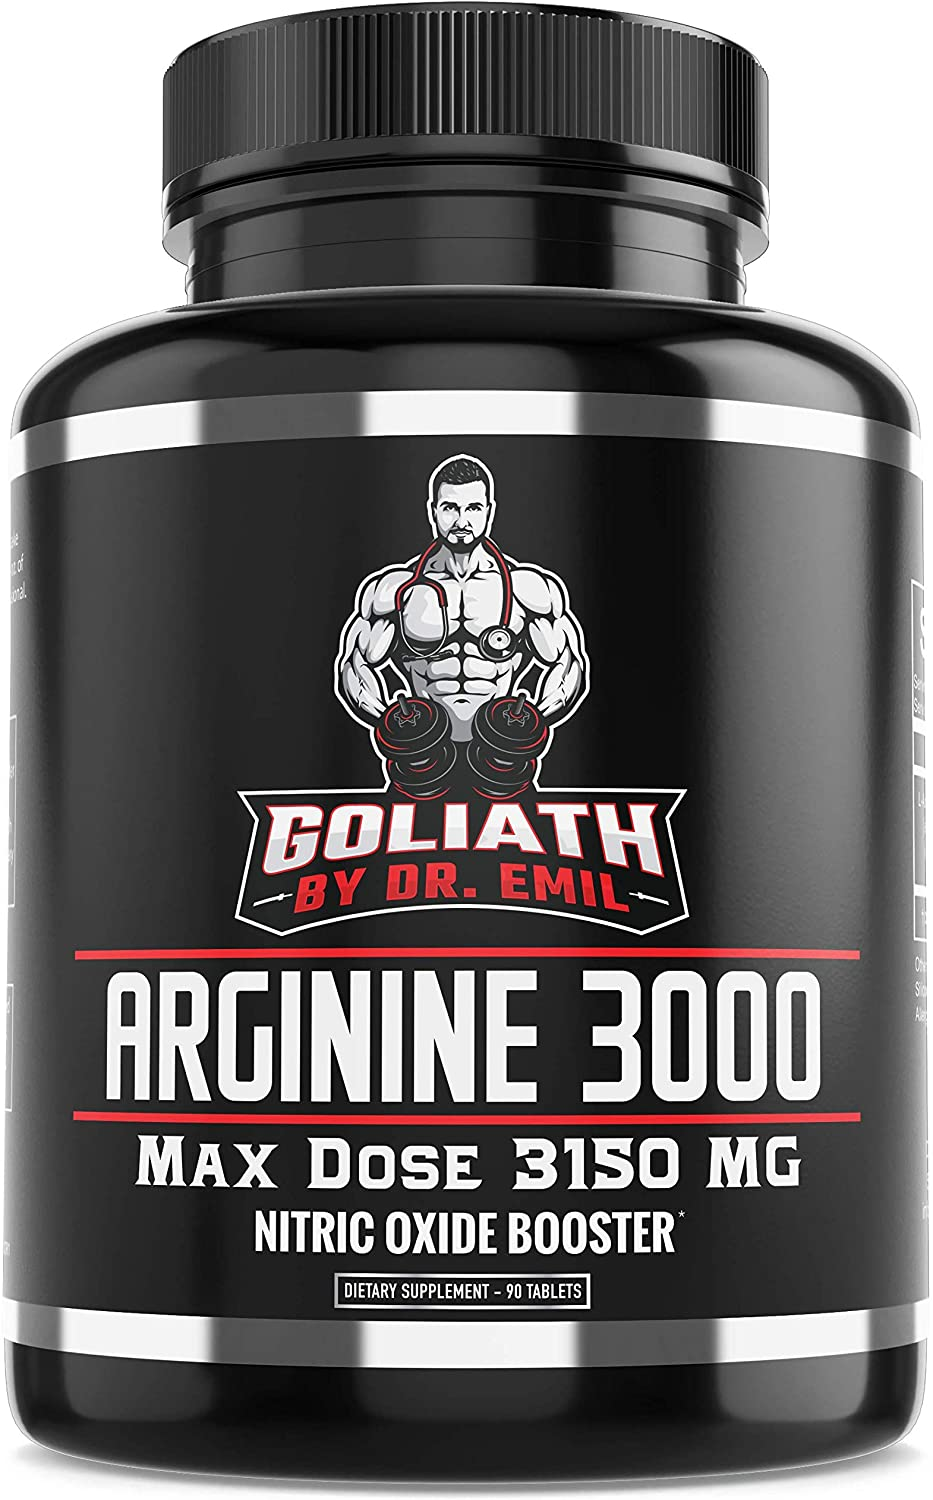 Dr. Emil - L Arginine (3150mg) Highest Capsule Dose - Nitric Oxide Supplement for Muscle Growth, Vascularity, Endurance and Heart Health (AAKG and HCL) - 90 Tablets: Health & Personal Care